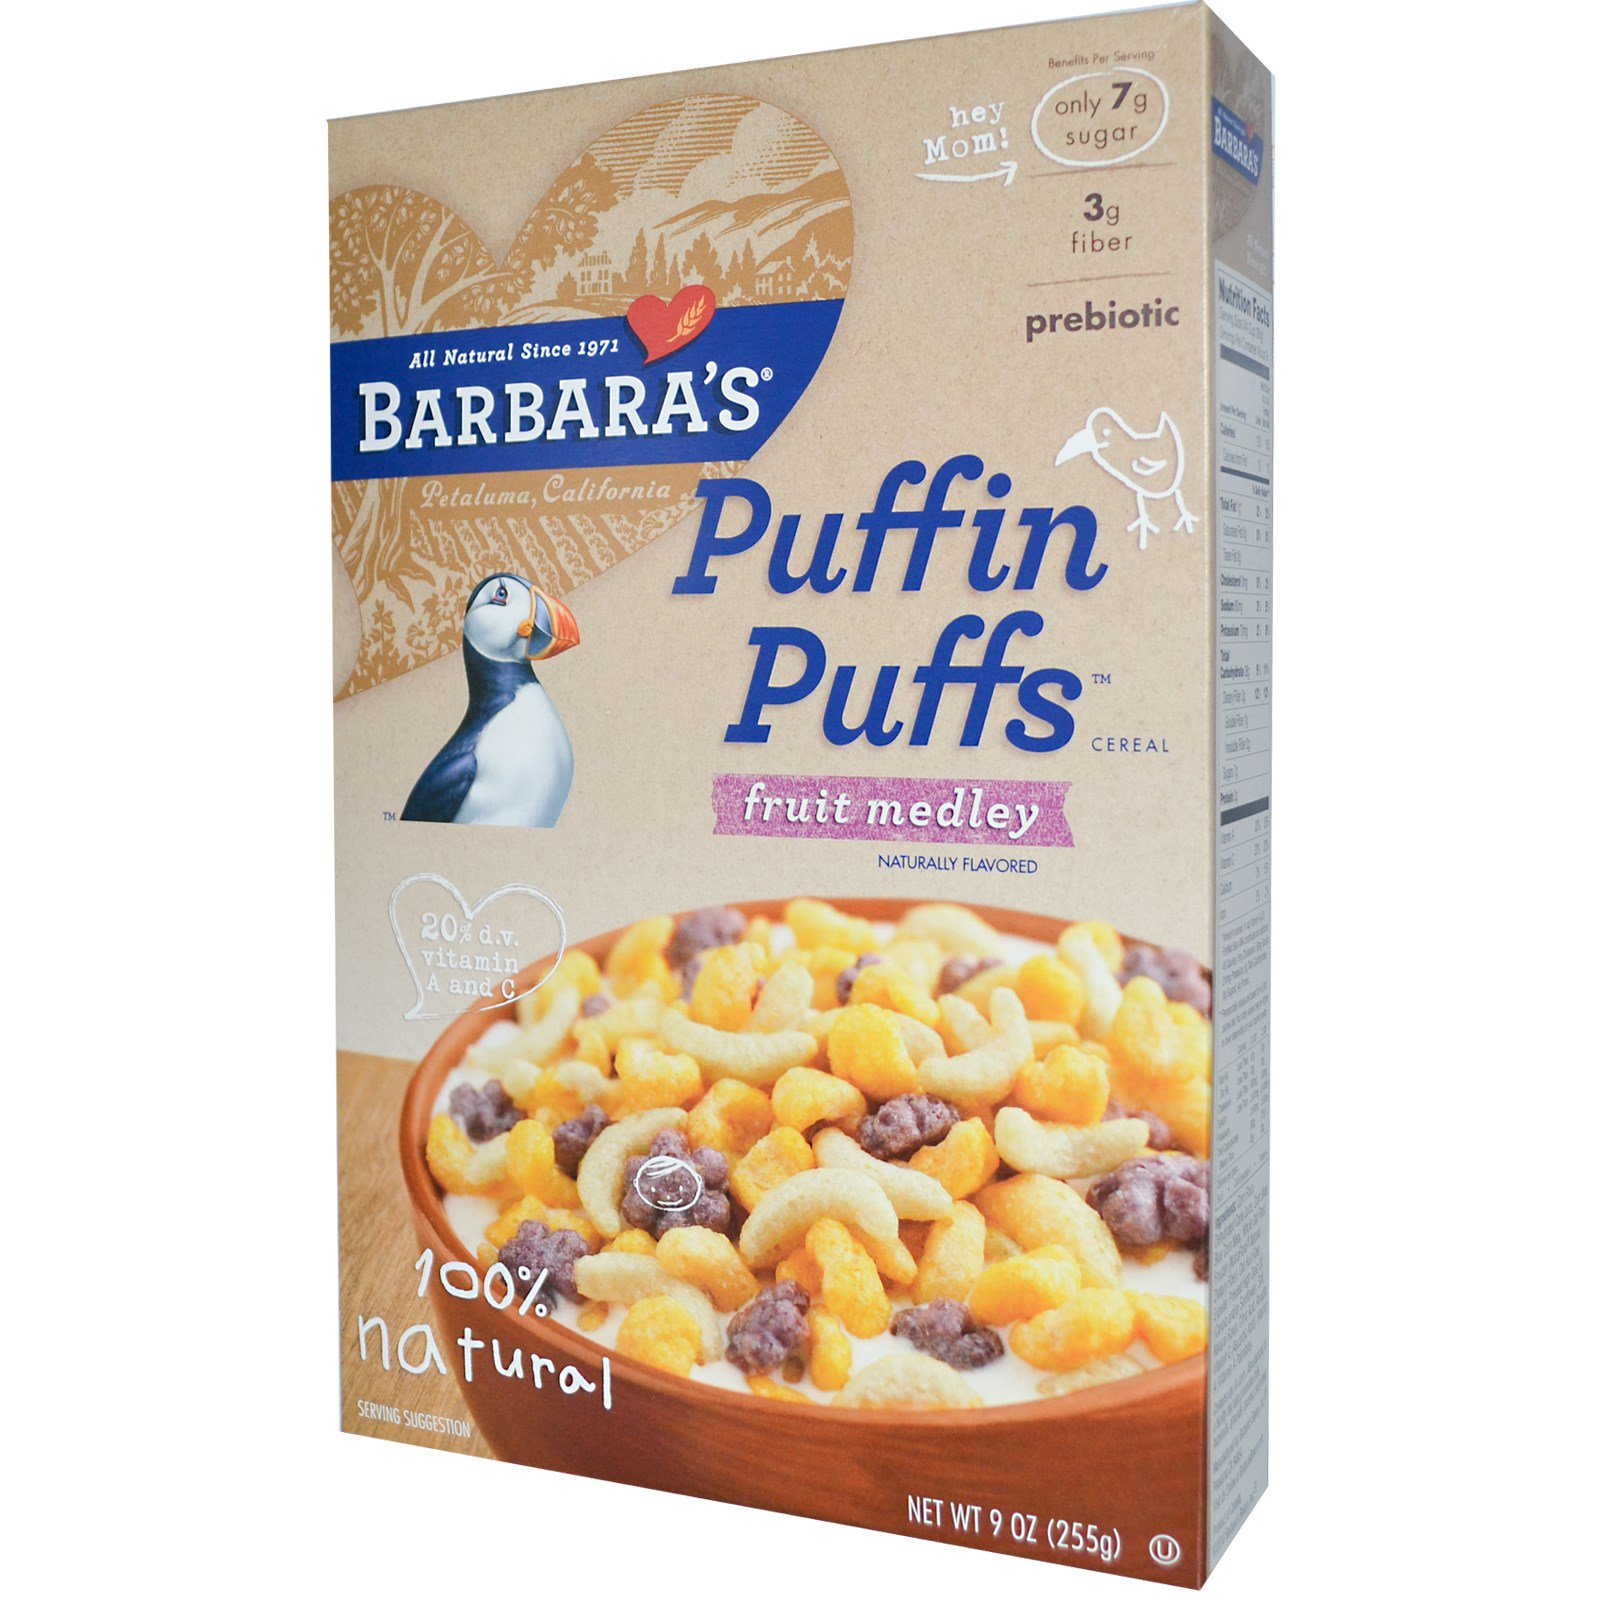 Barbara's Bakery, Puffin Puffs Cereal, Fruit Medley, 9 Oz